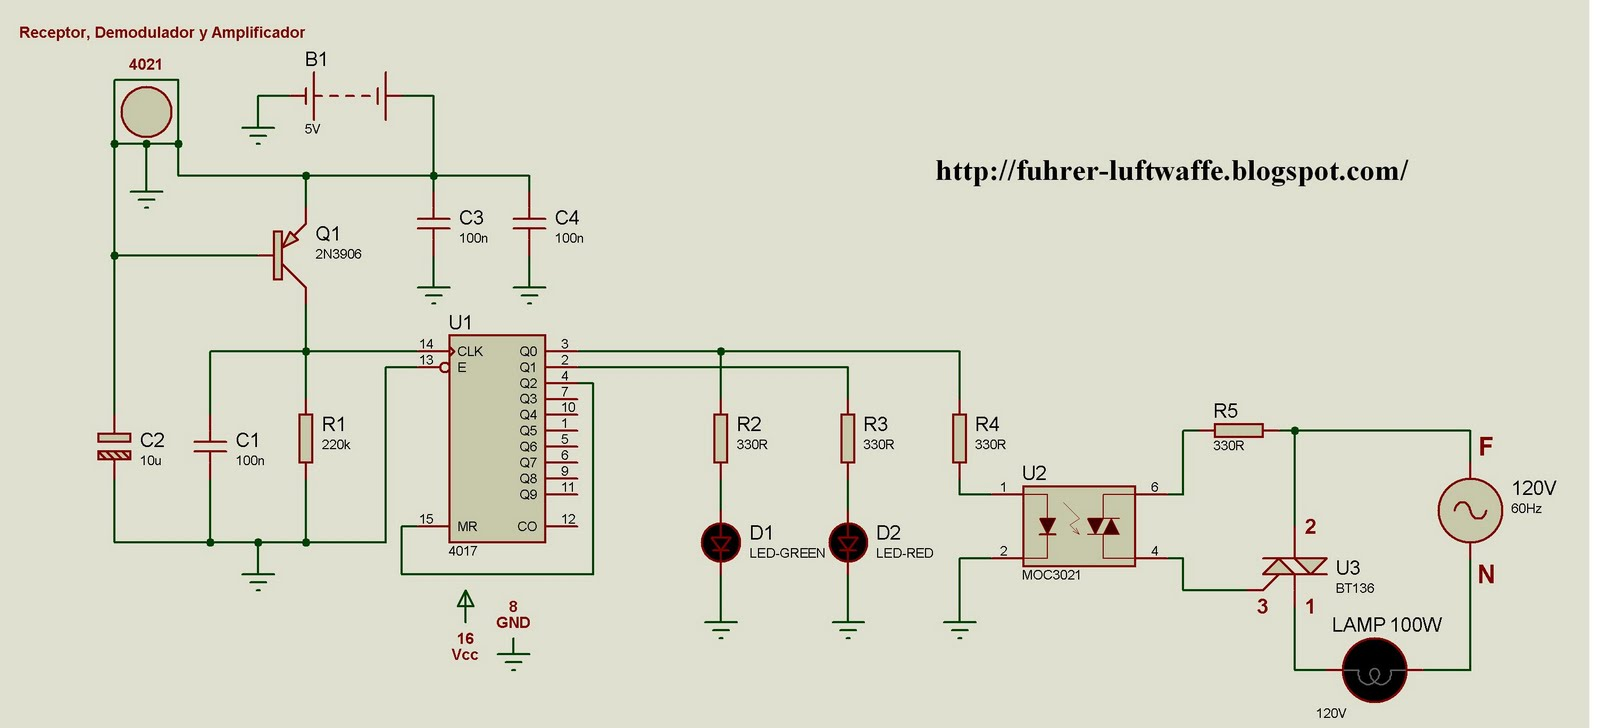 Attiny85 Via Arduino Quickstart Guide likewise Capacitor For Current Transformer Measurement Circuit together with 18 0 18 2A 18v Transformer additionally 177992 furthermore 623672097. on 10uf capacitor